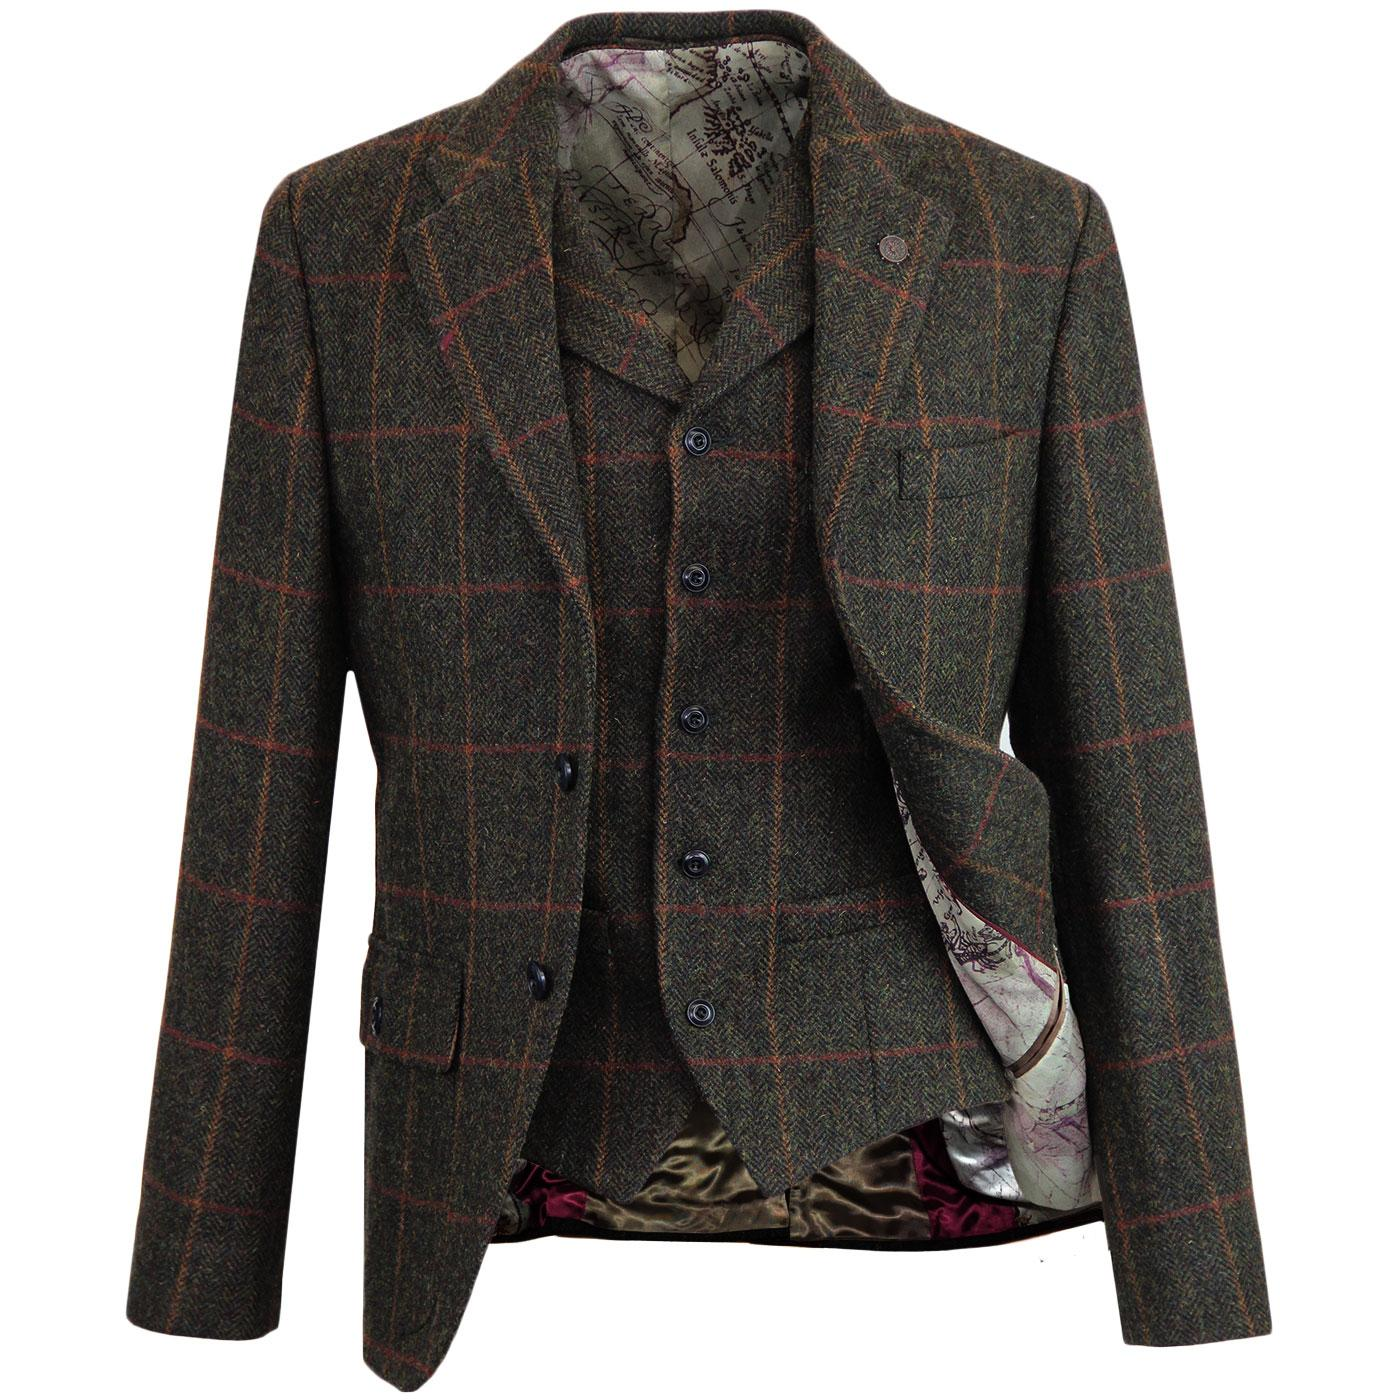 GIBSON LONDON Herringbone Check Blazer & Waistcoat